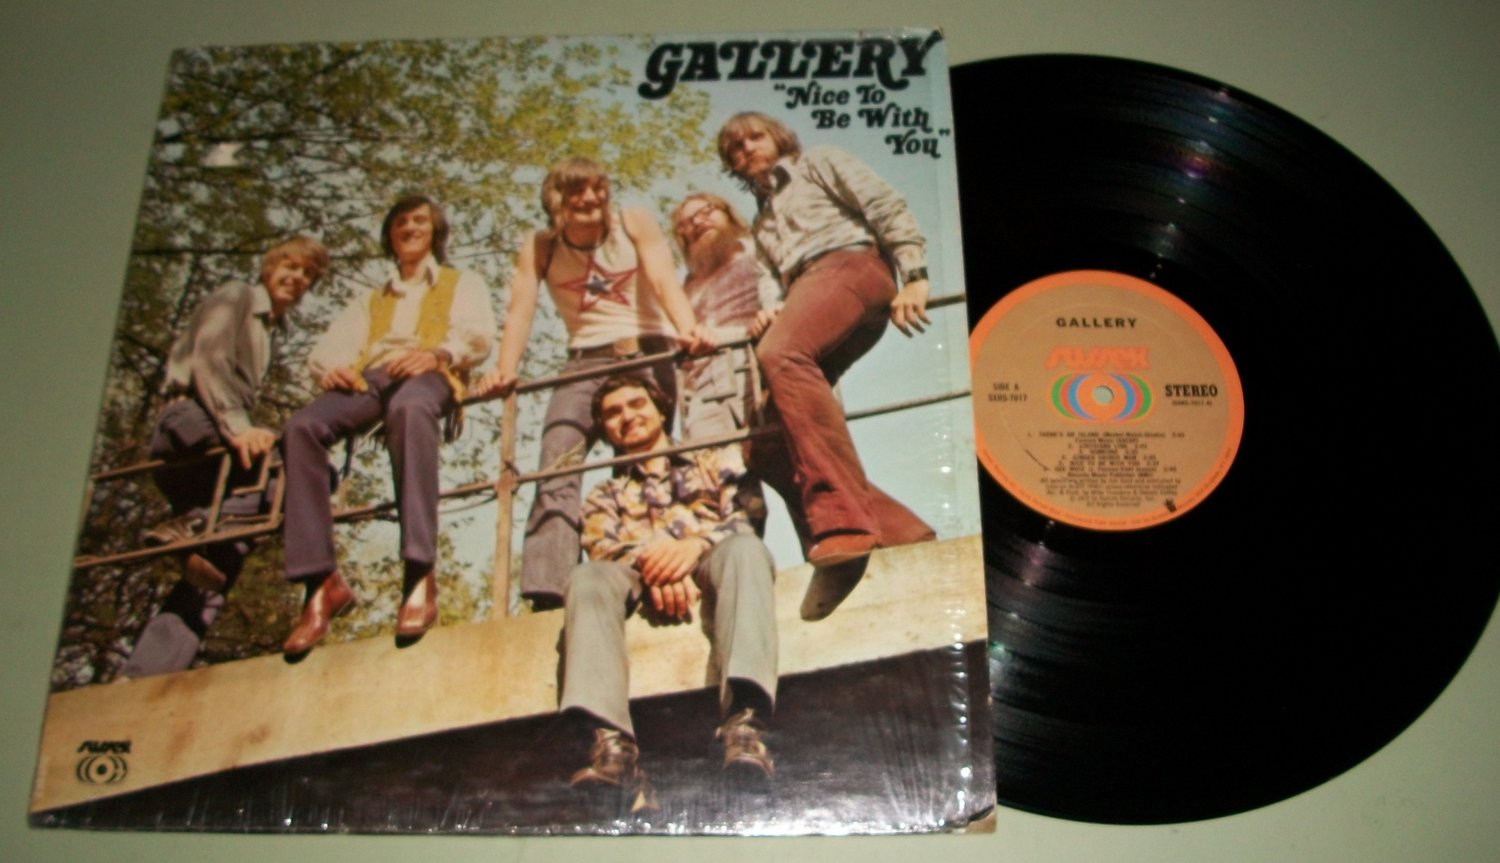 Gallery - Nice To Be With You - SUSSEX 7017 - Rock Record LP